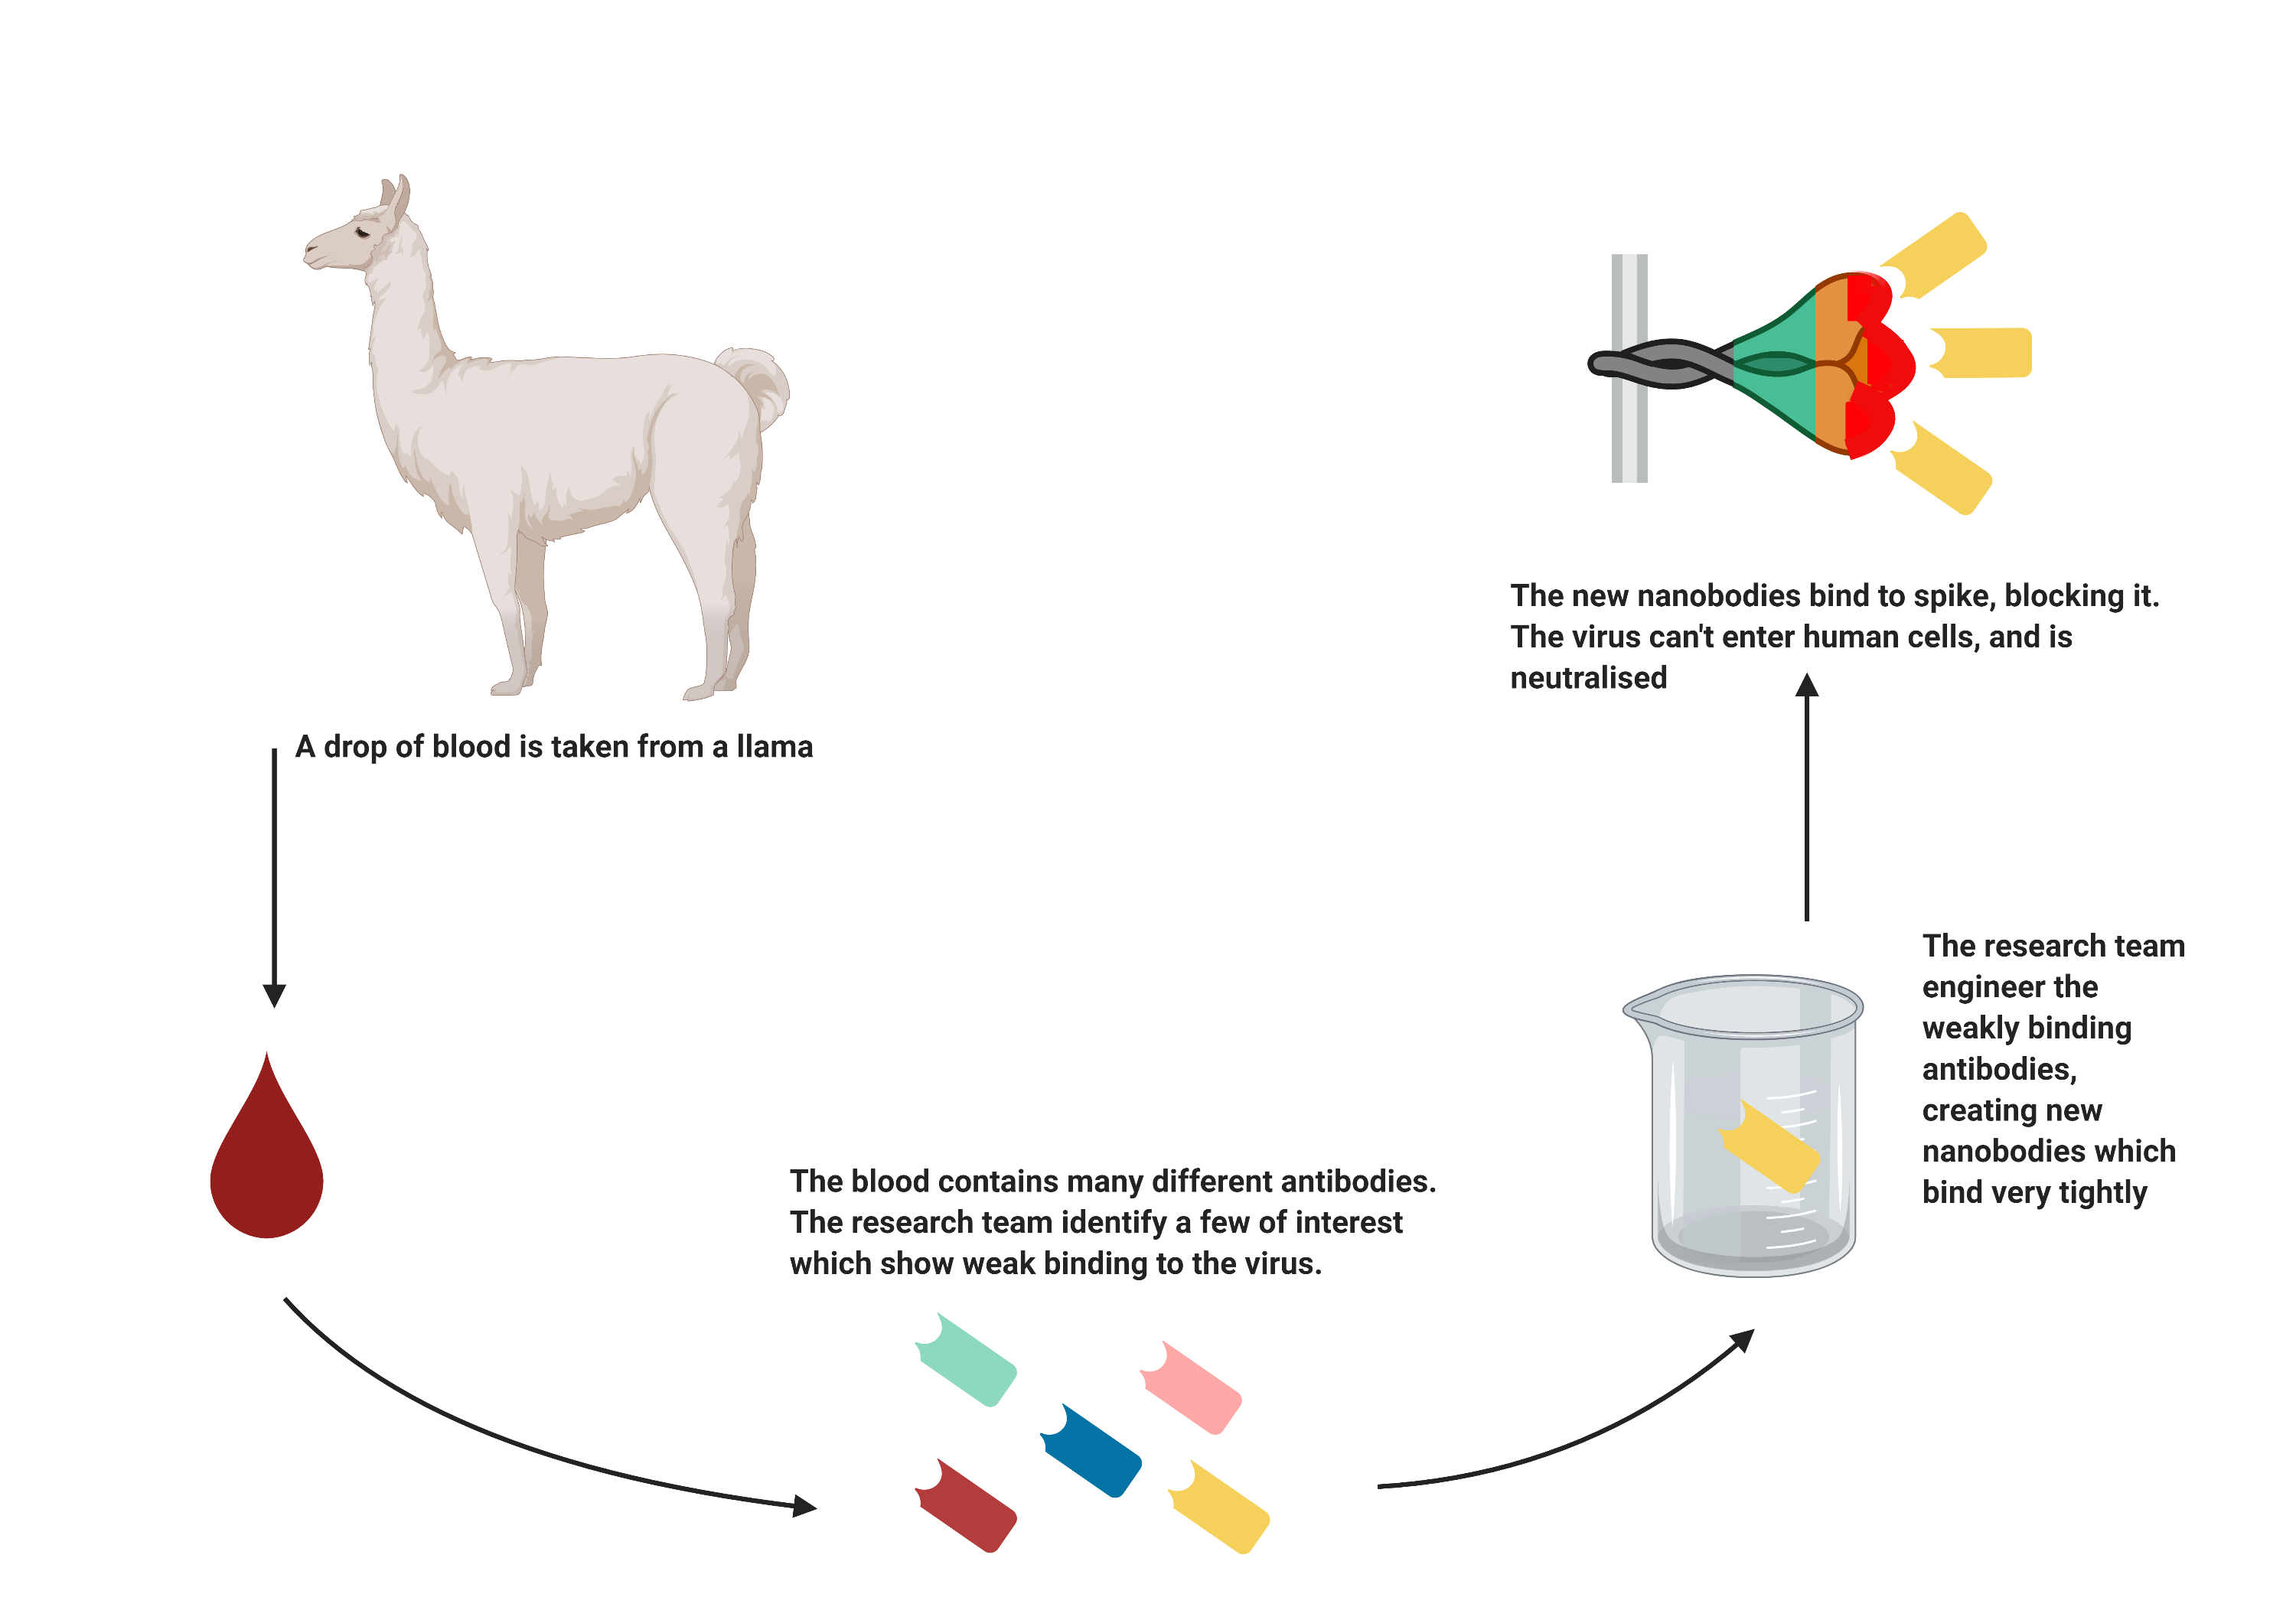 Graphic showing how blood from a llama creates new nanobodies